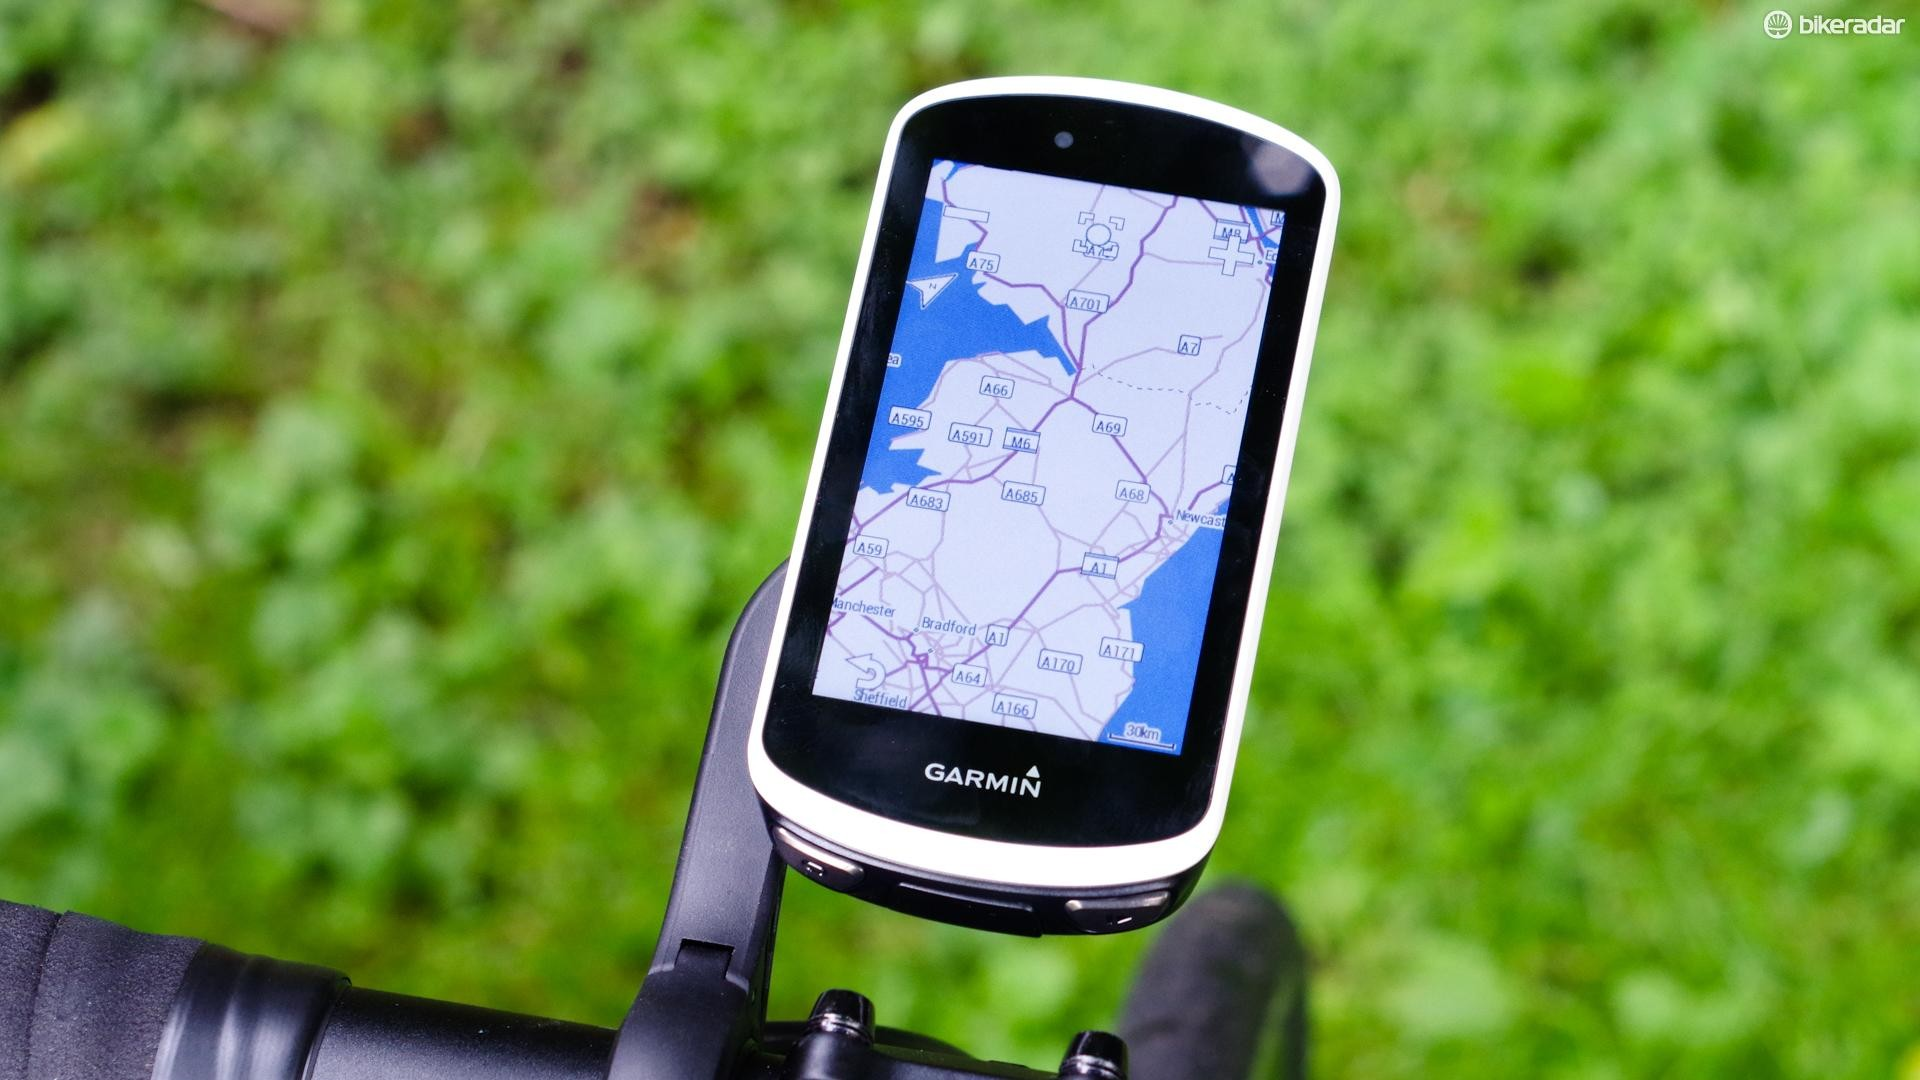 Garmin Edge 1030 review - GPS Devices - GPS Computers